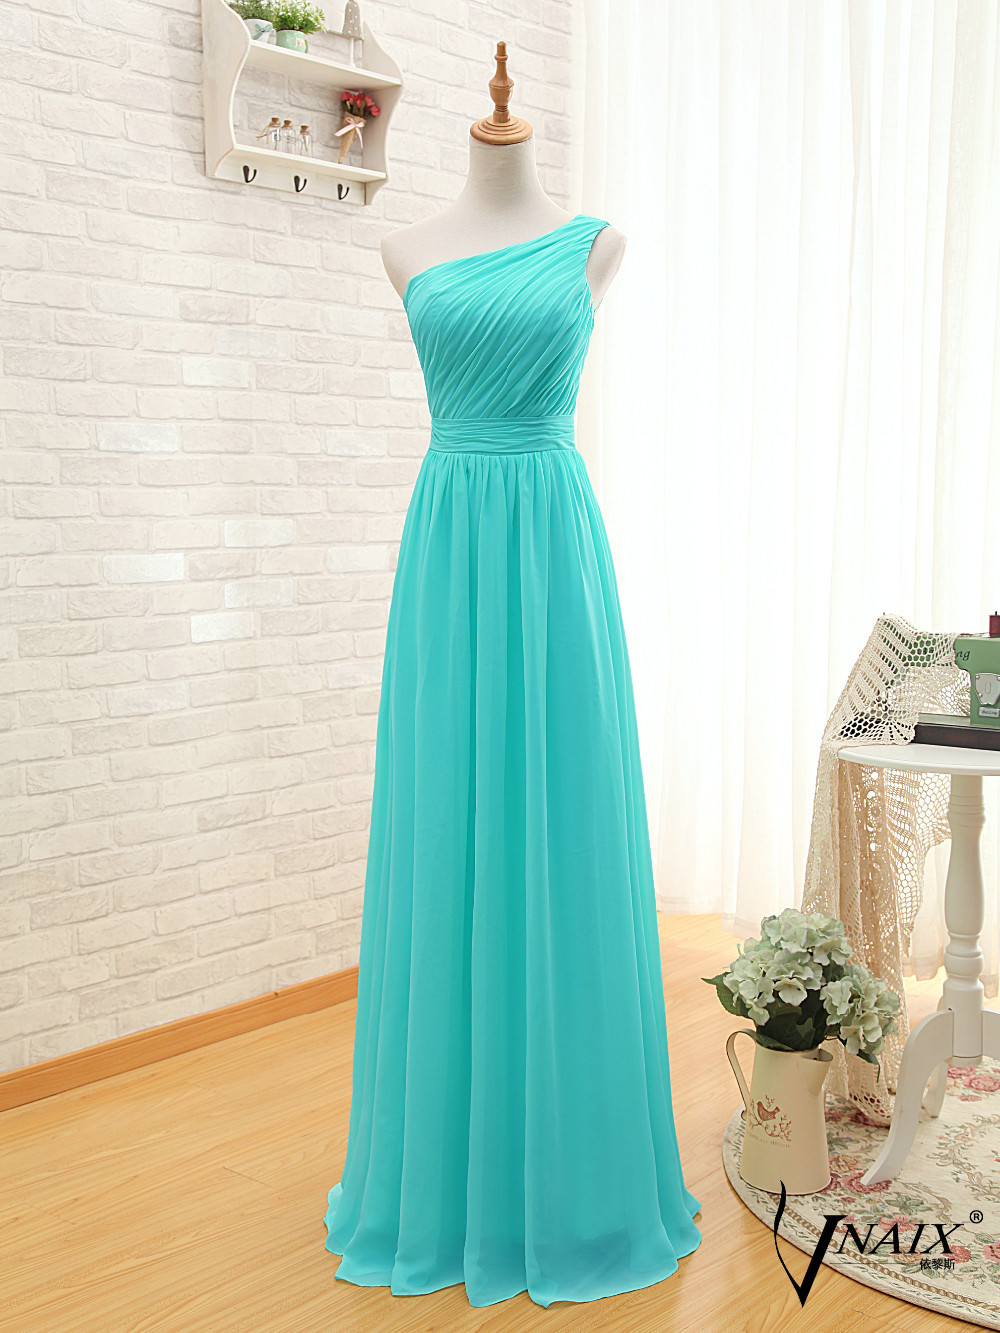 Aliexpress buy simple 2017 three styles multi color a line aliexpress buy simple 2017 three styles multi color a line mint green chiffon bridesmaid dresses long wedding party dress maid of honor bw01 from ombrellifo Choice Image